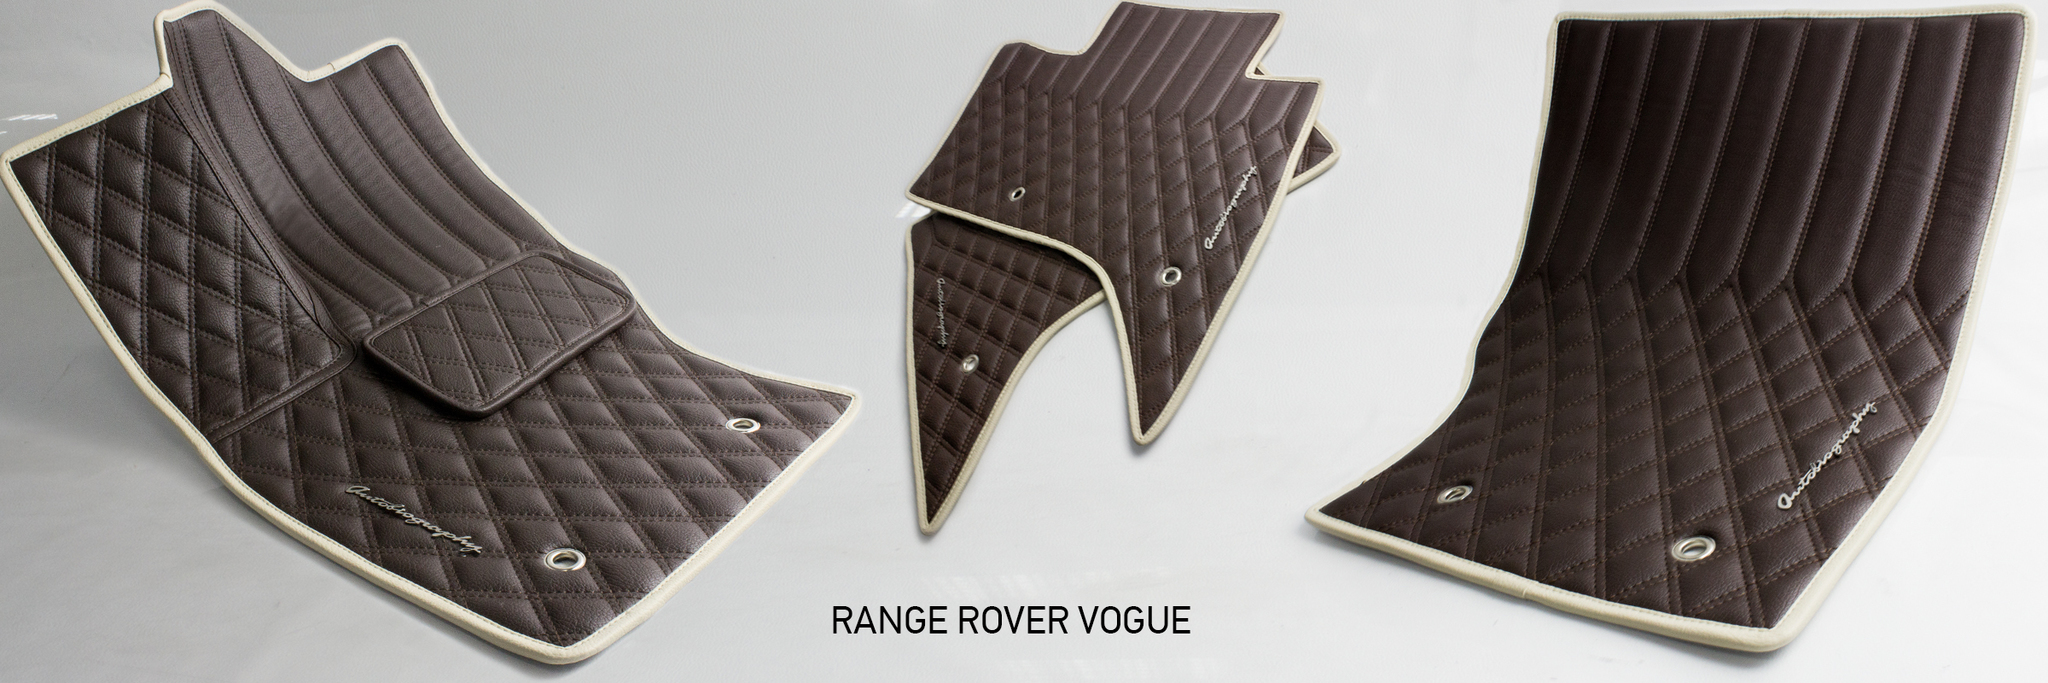 images-products-1-442-232989114-RANGE_ROVER_VOGUEvv.jpg